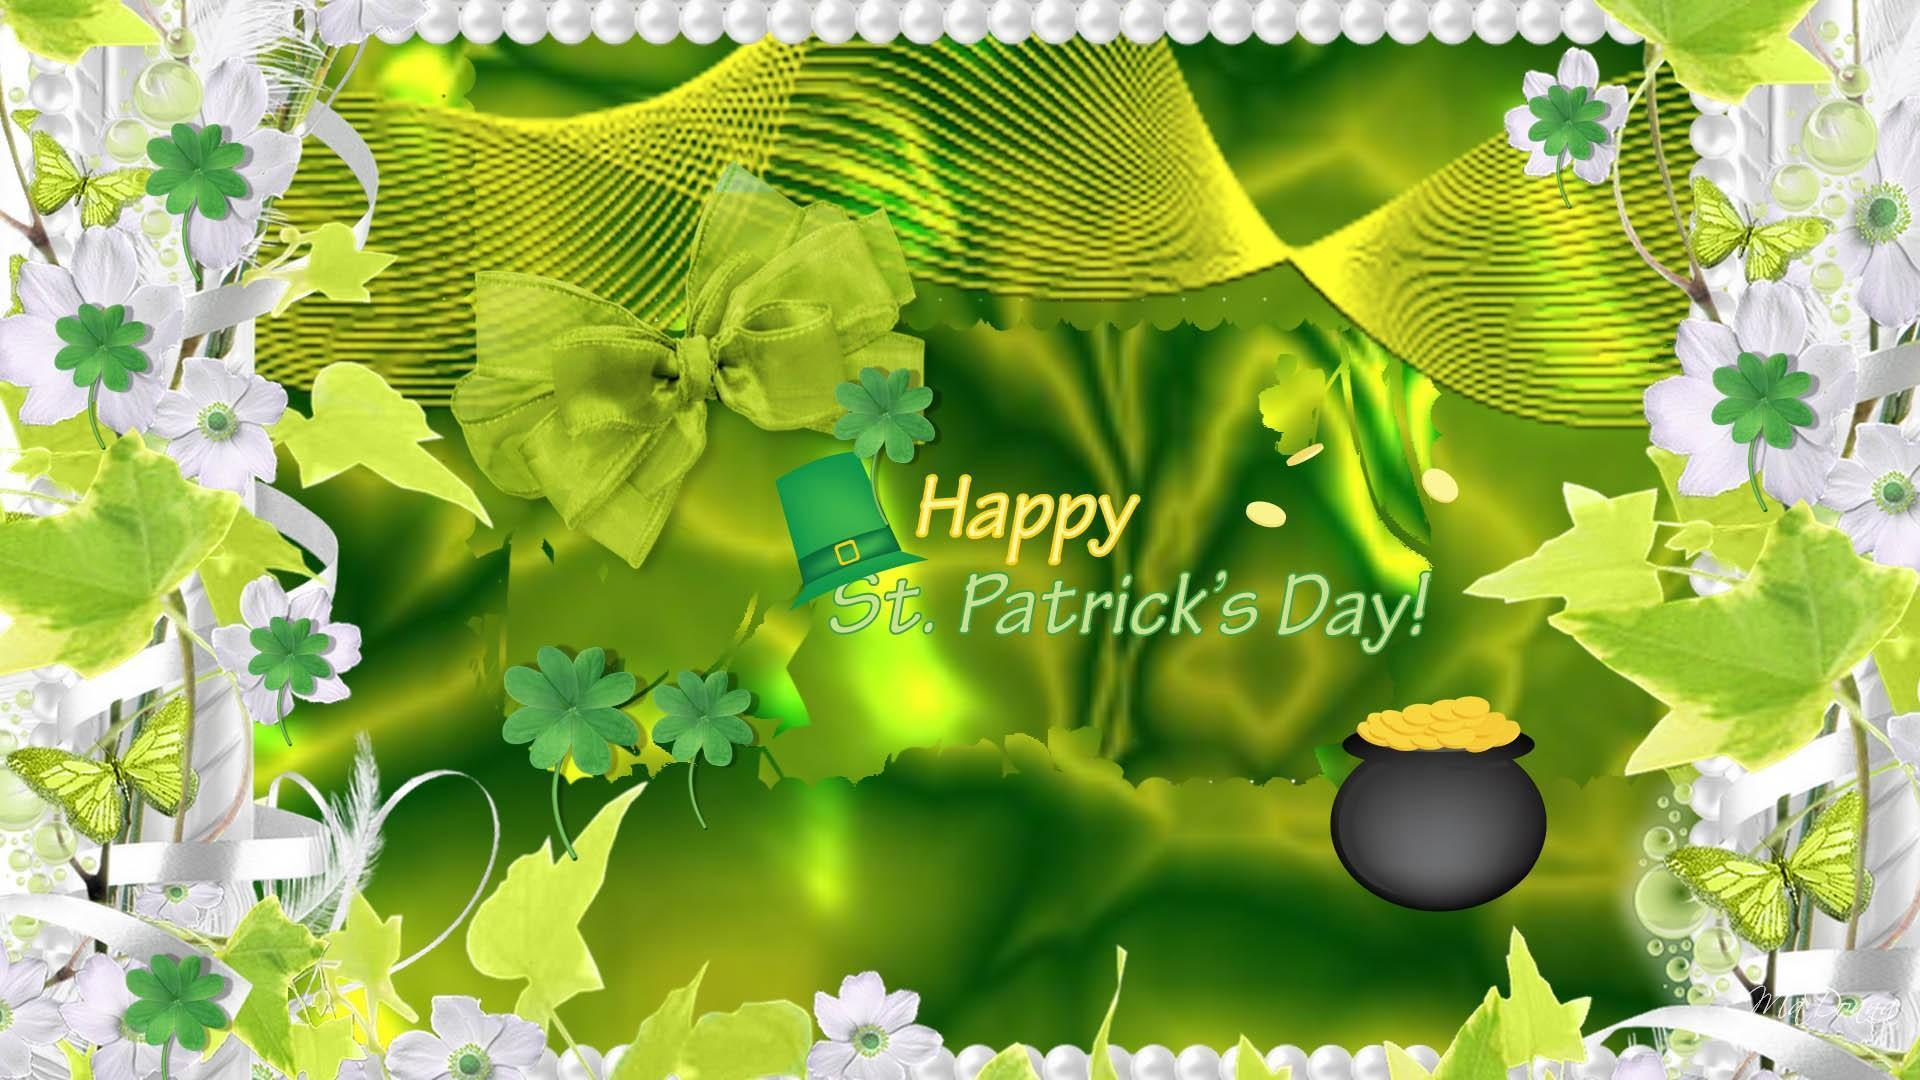 St Patrick's Day Wallpaper | Wallpaper Color